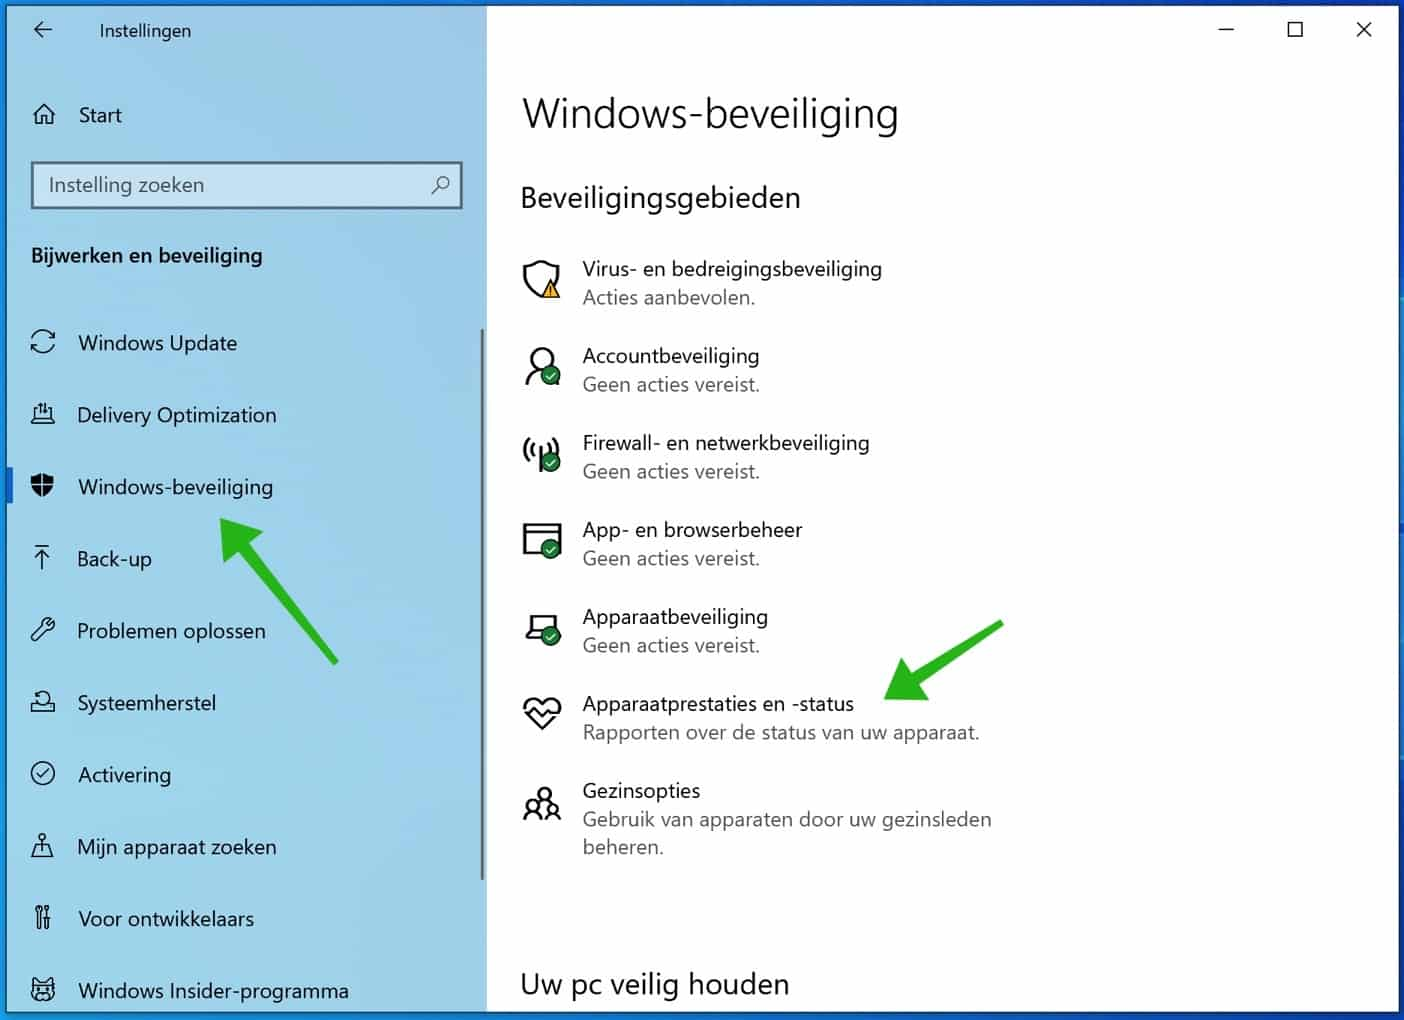 apparaatprestaties en status instellingen windows 10